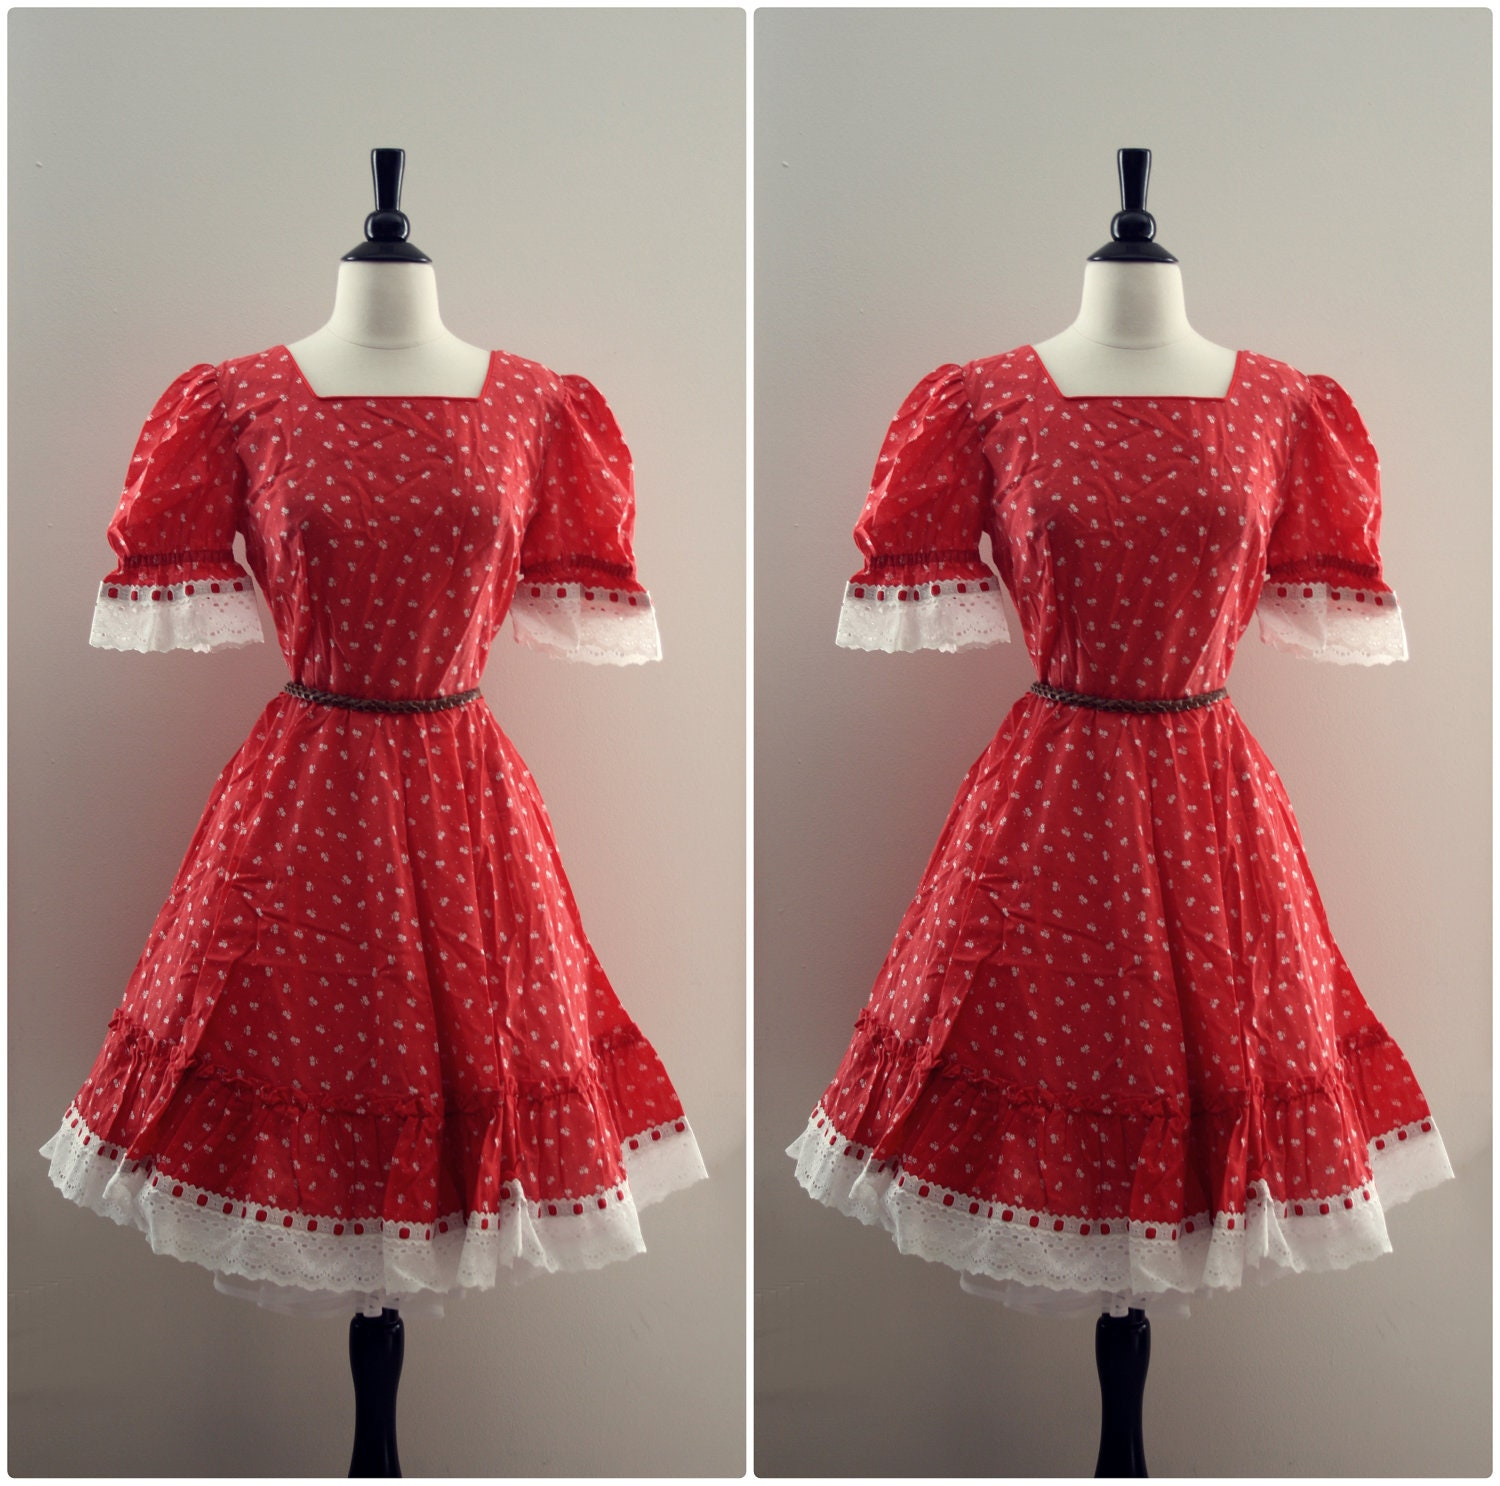 Vintage 1960s Square Dance Dress. Full Skirt. White and Red Floral Print. Eyelet Cotton, Metal Zipper. Size S/M